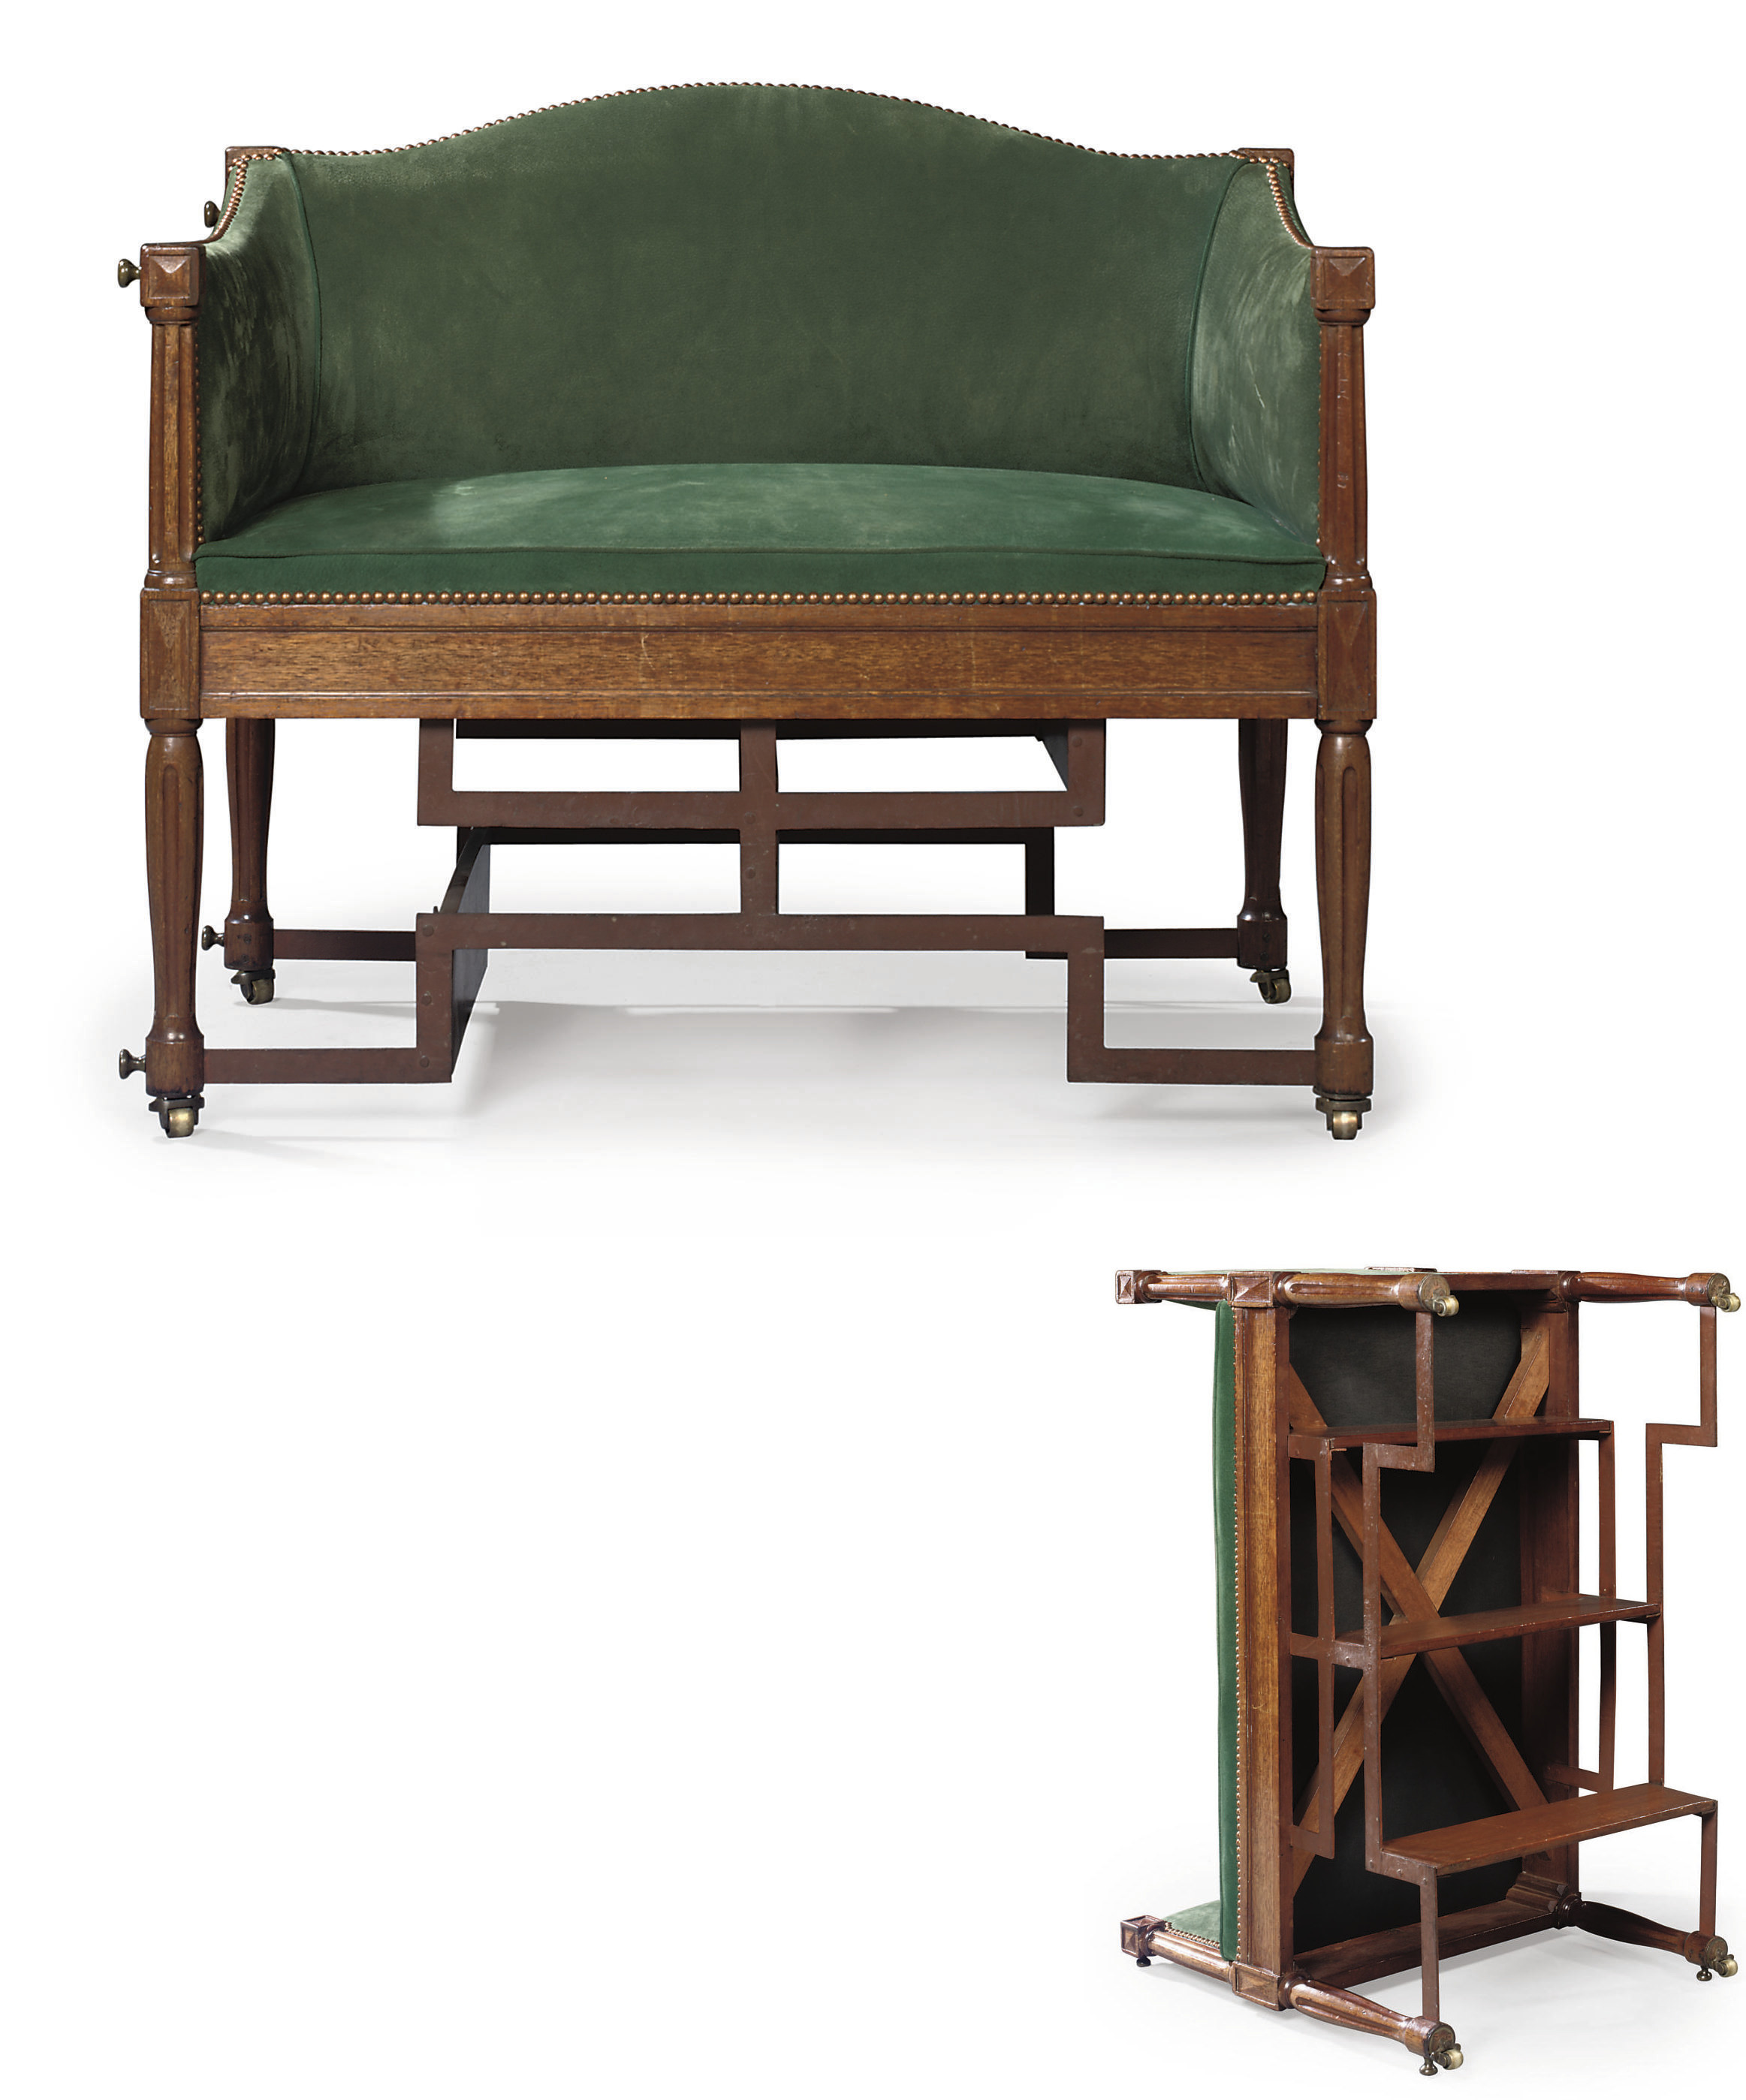 A DIRECTOIRE MAHOGANY AND IRON METAMORPHIC SETTEE